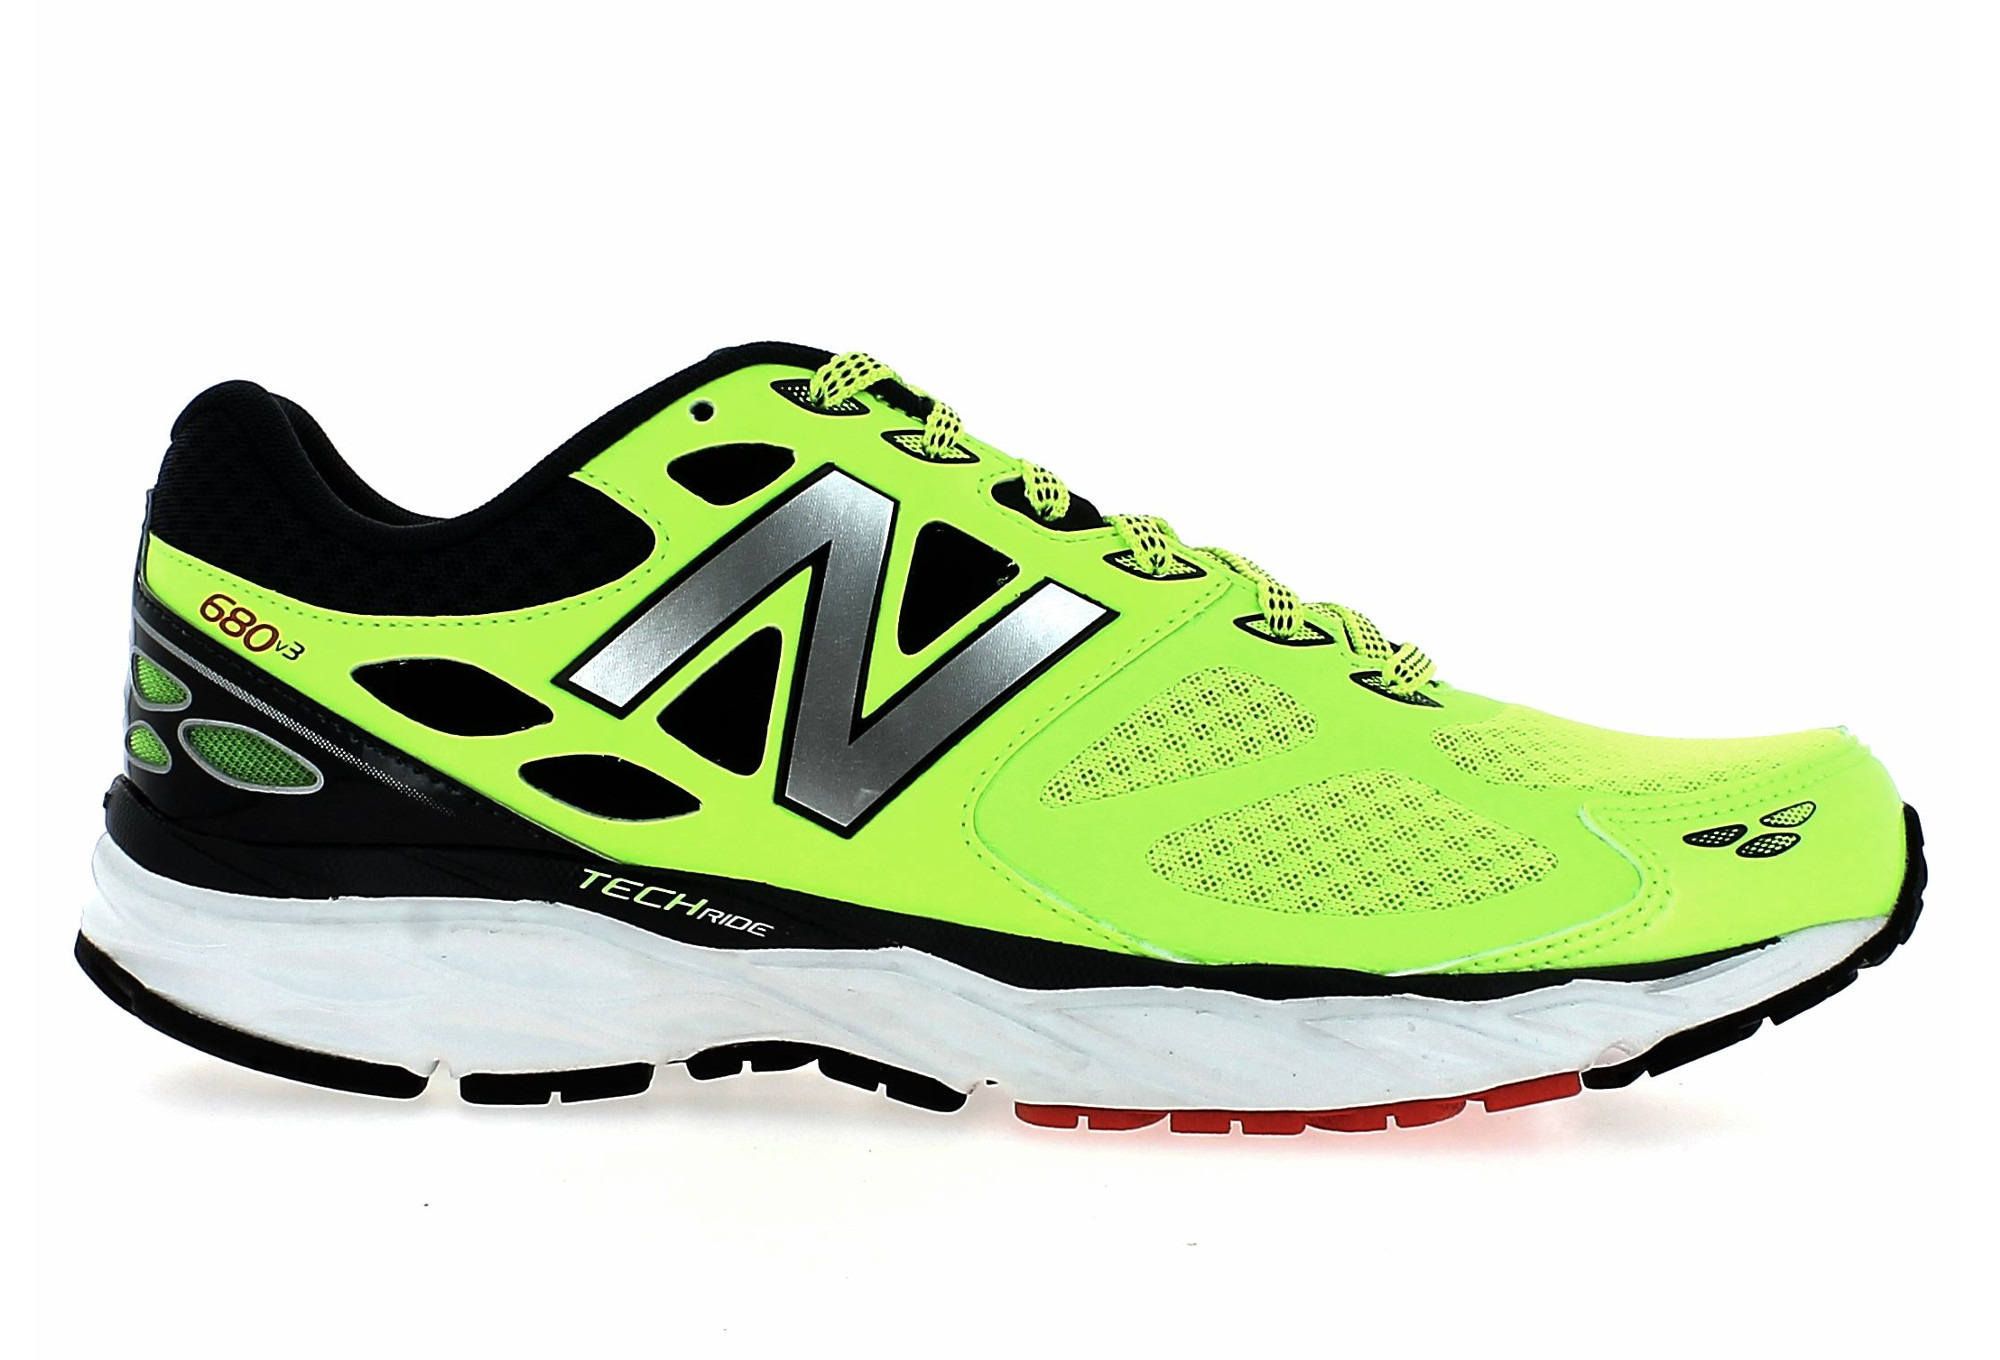 new balance 680 v2 review